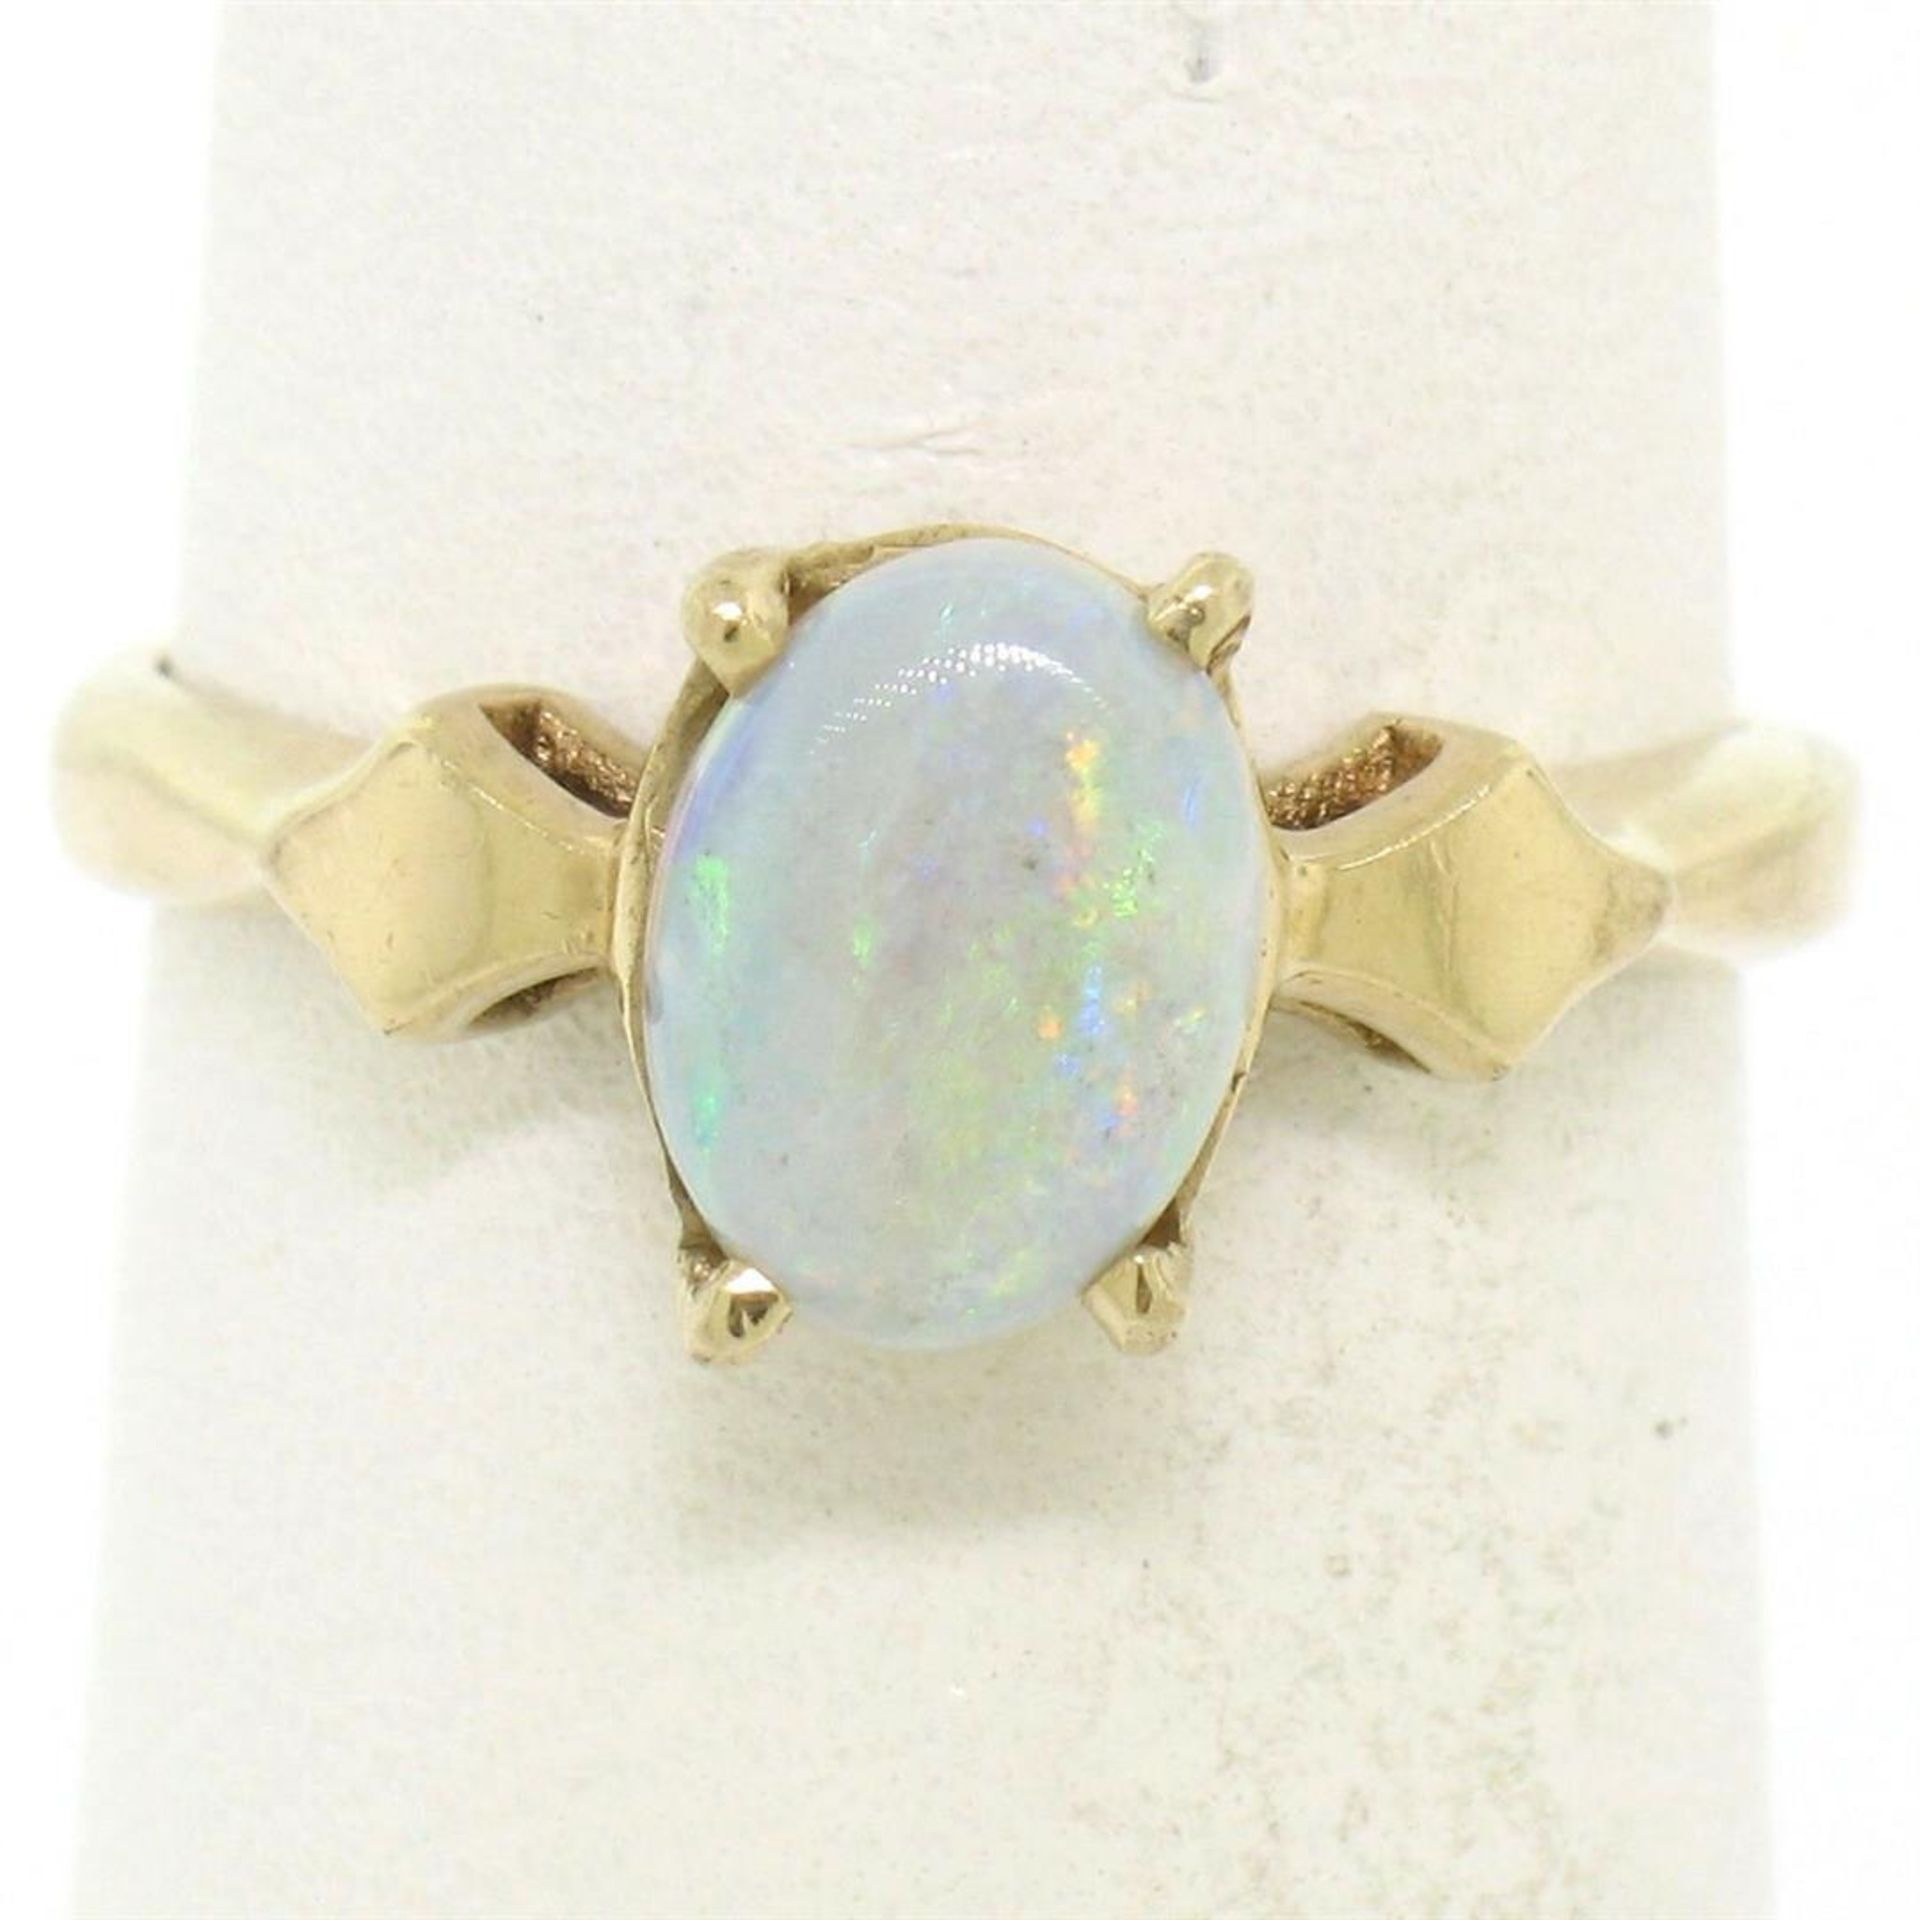 Vintage 14K Yellow Gold 0.65ct Petite Oval Cabochon Opal Solitaire Ring Size 6 - Image 2 of 9